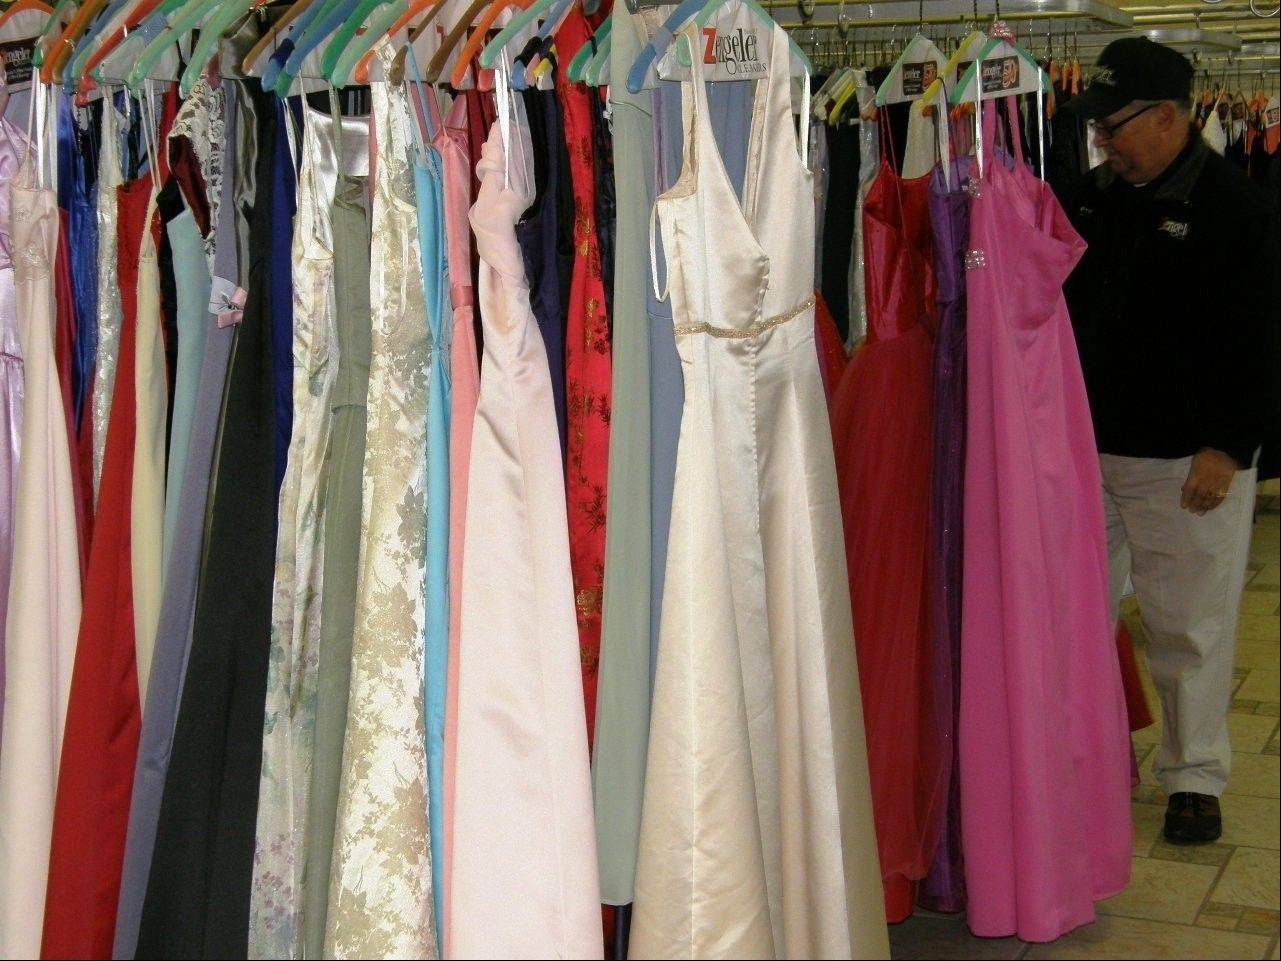 Pete Donis, Zengeler Cleaners route supervisor, inspects dresses prior to a delivery to the Glass Slipper Project.